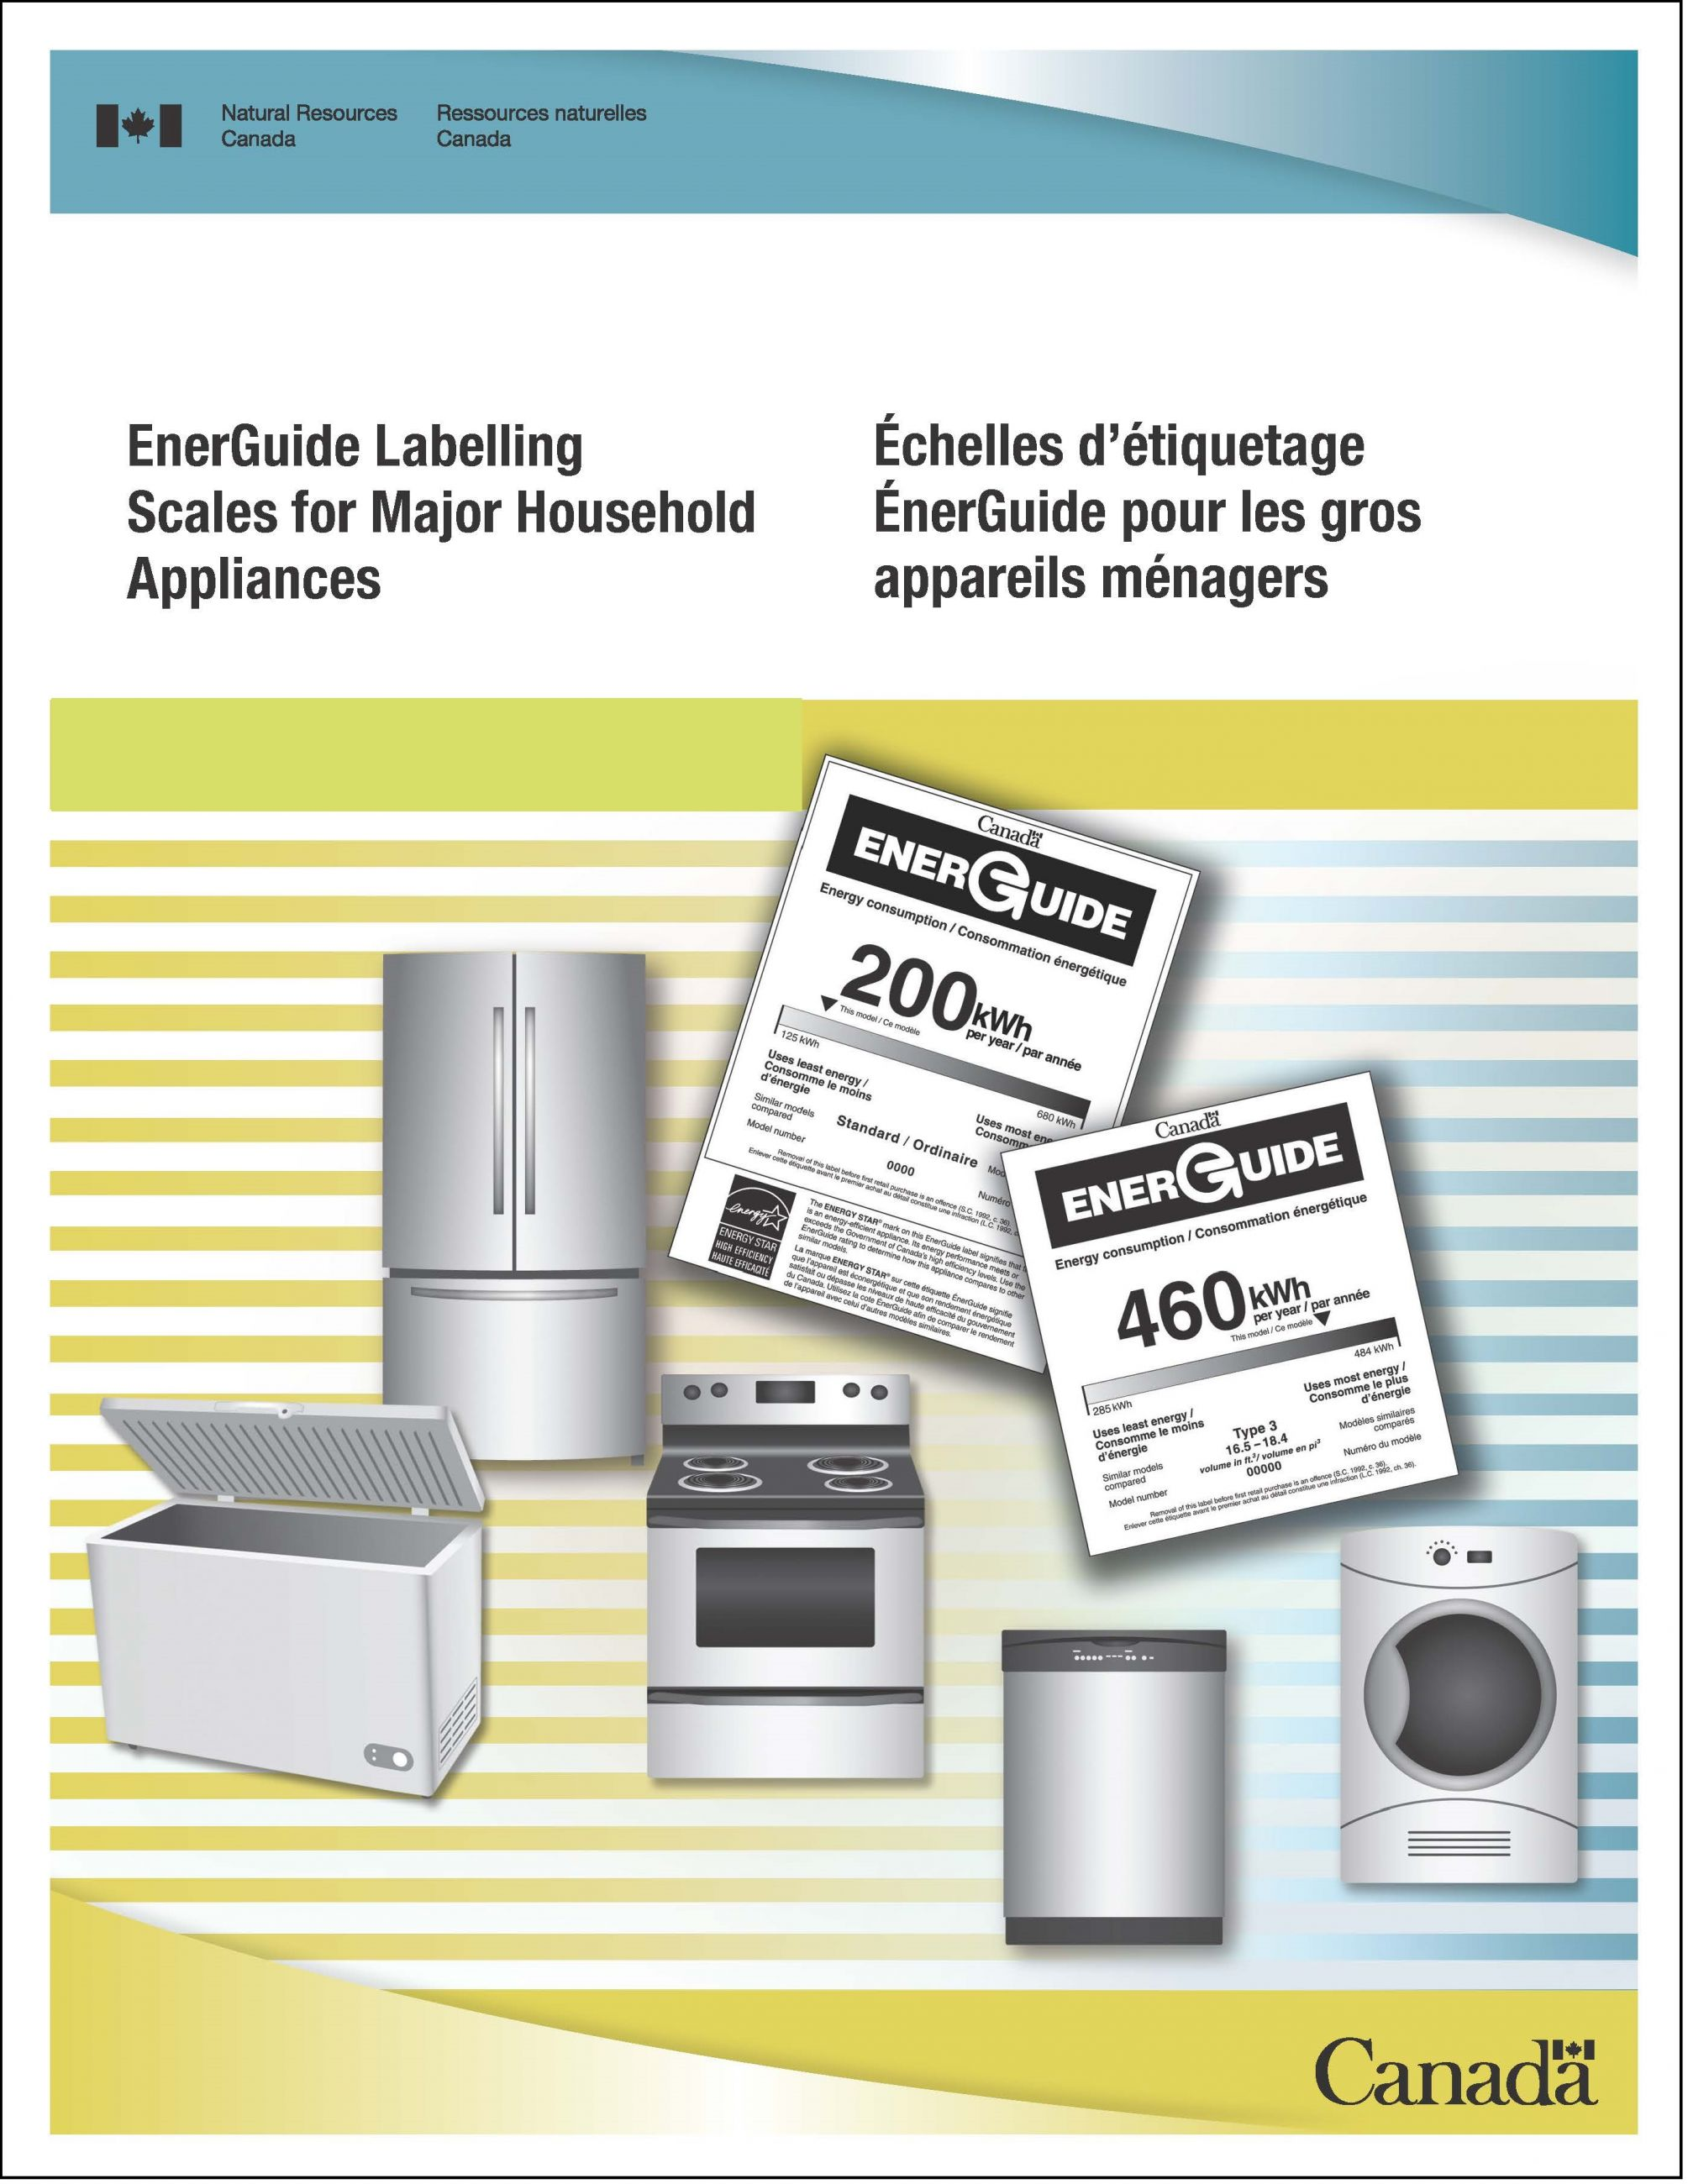 EnerGuide Labelling Scales for Major Household Appliances